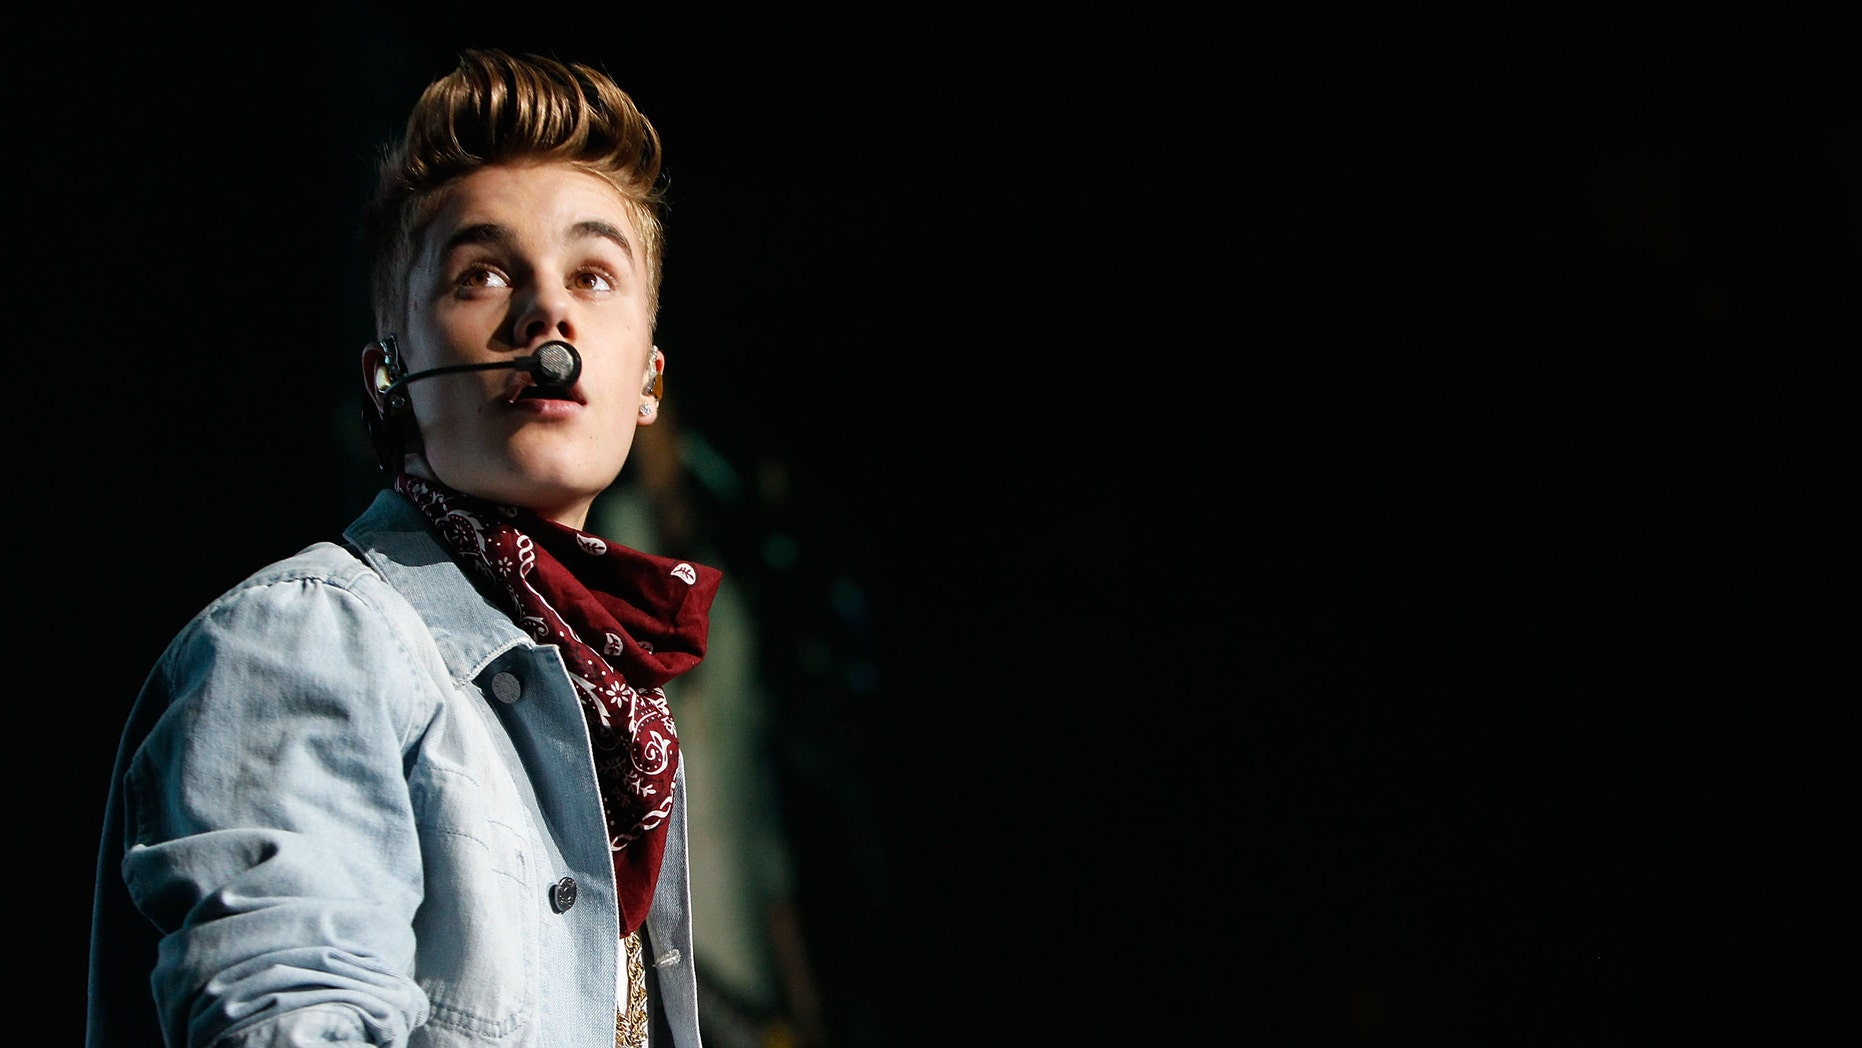 Justin Bieber performs onstage during Power 96.1's Jingle Ball 2012 at the Philips Arena on December 12, 2012 in Atlanta.